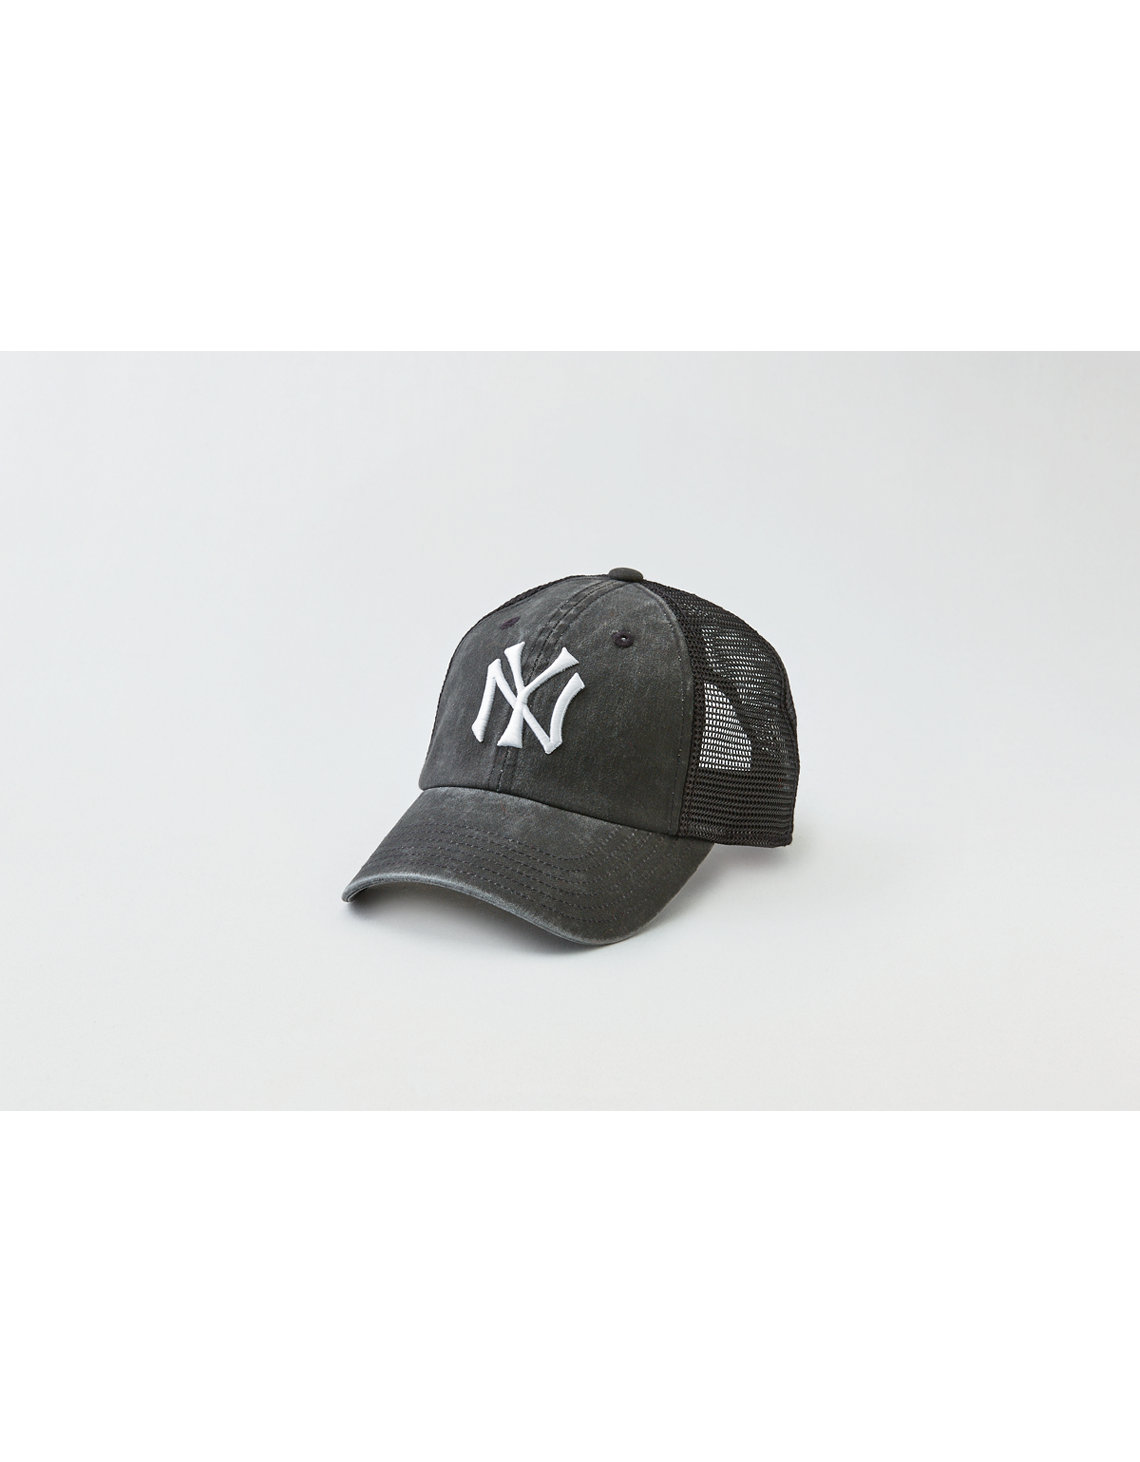 American Needle New York Yankees Hat f82cdb641a03